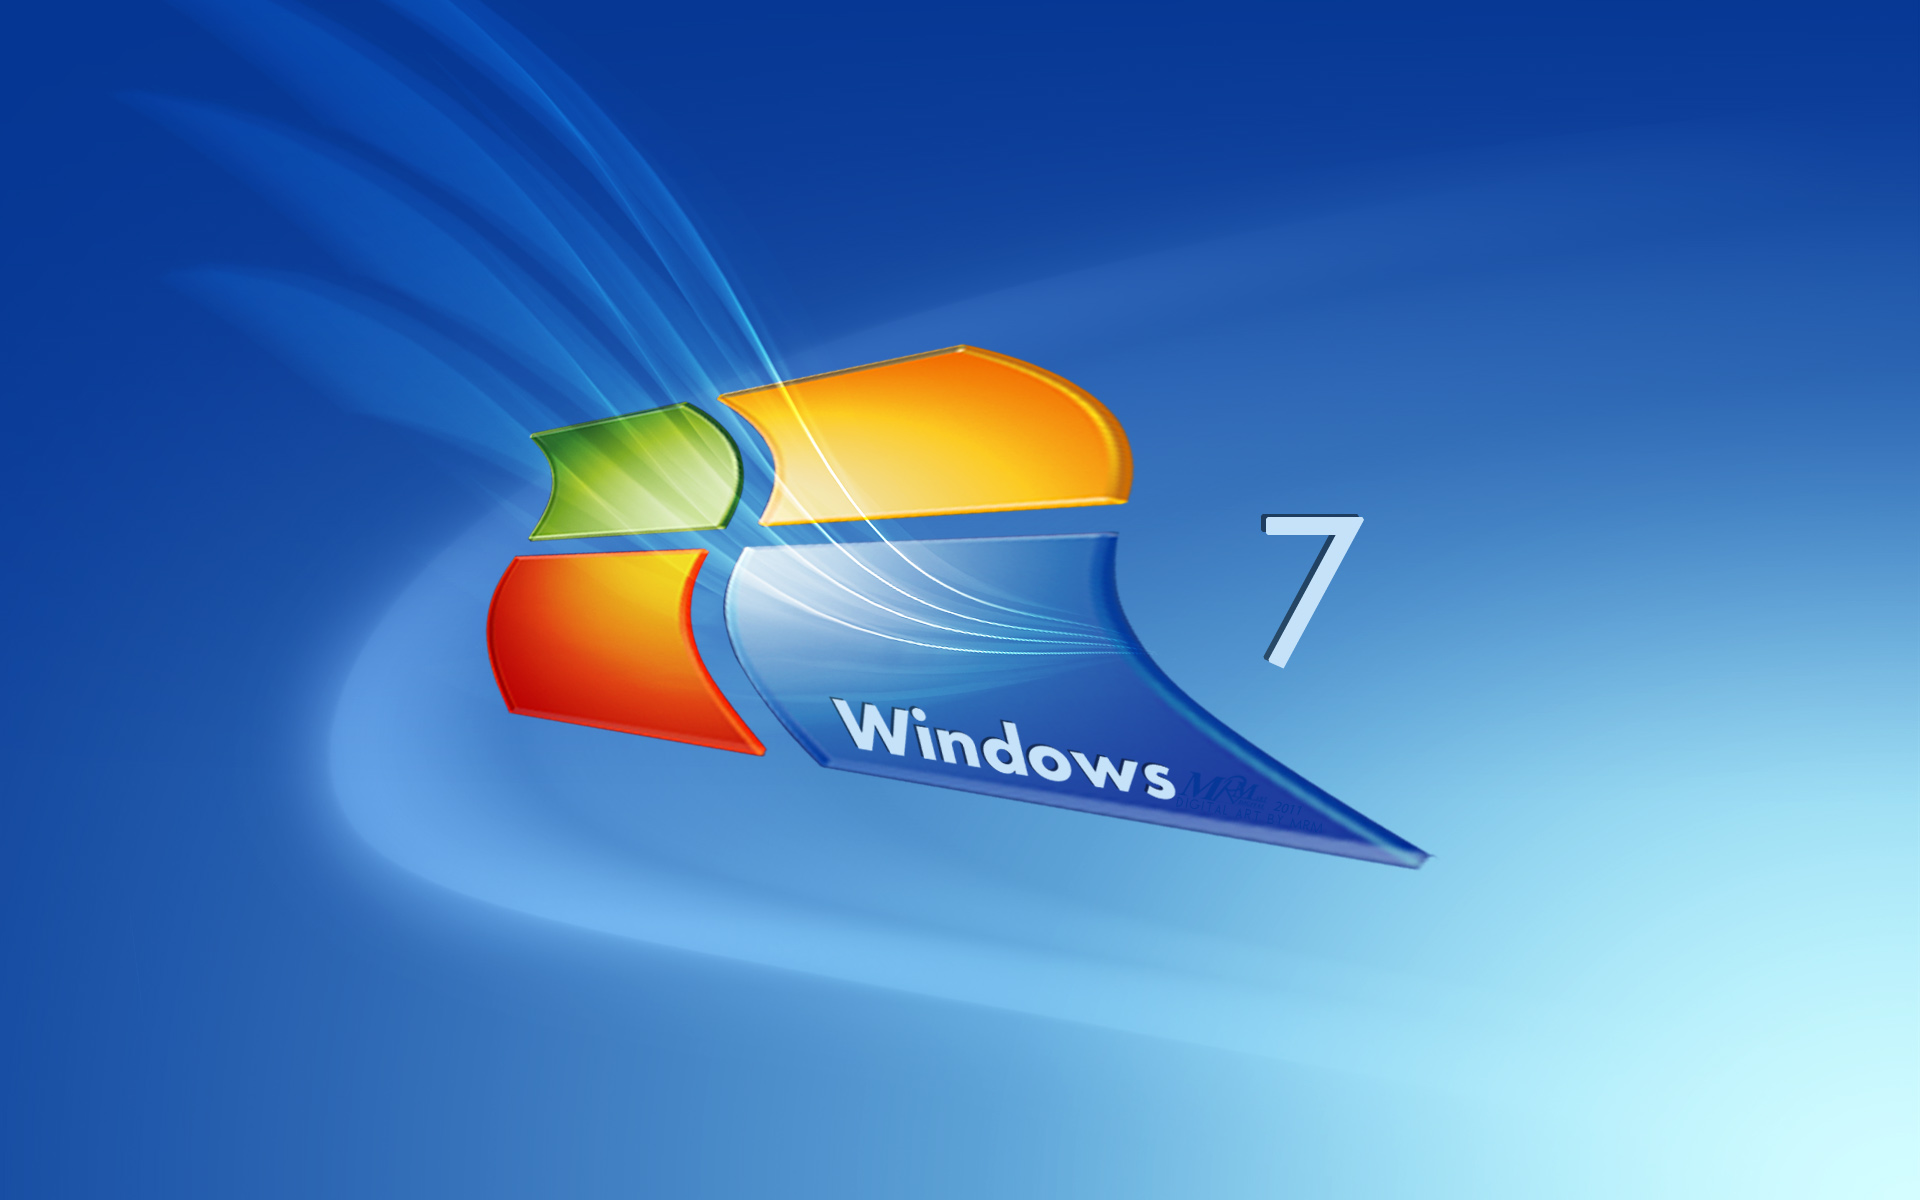 Wallpaper Window 7 Posted By Ethan Thompson